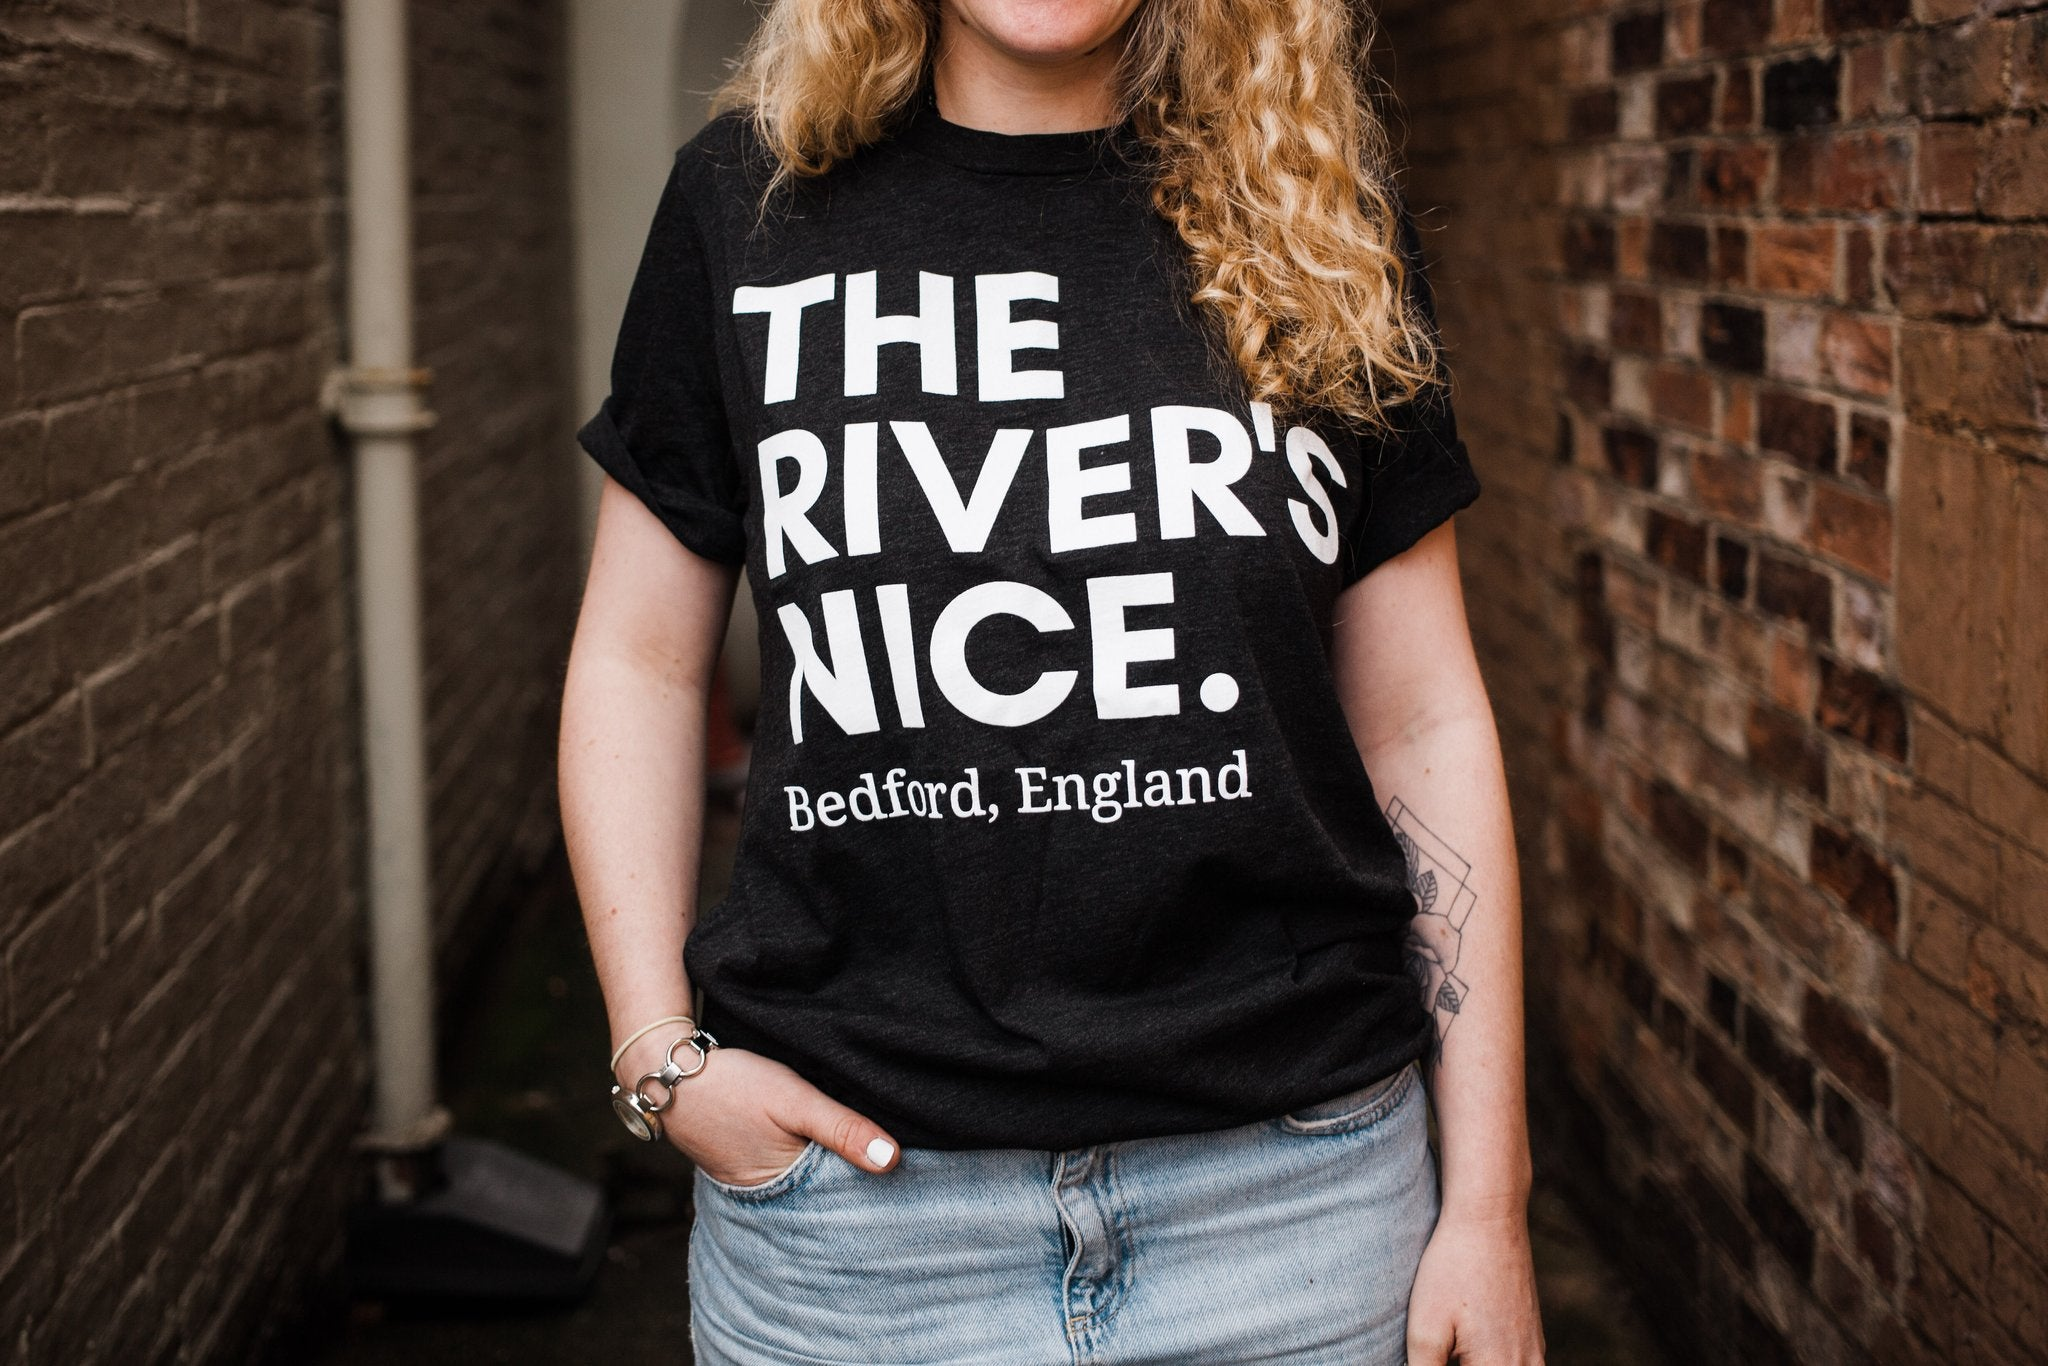 The River's Nice Bedford T-Shirt